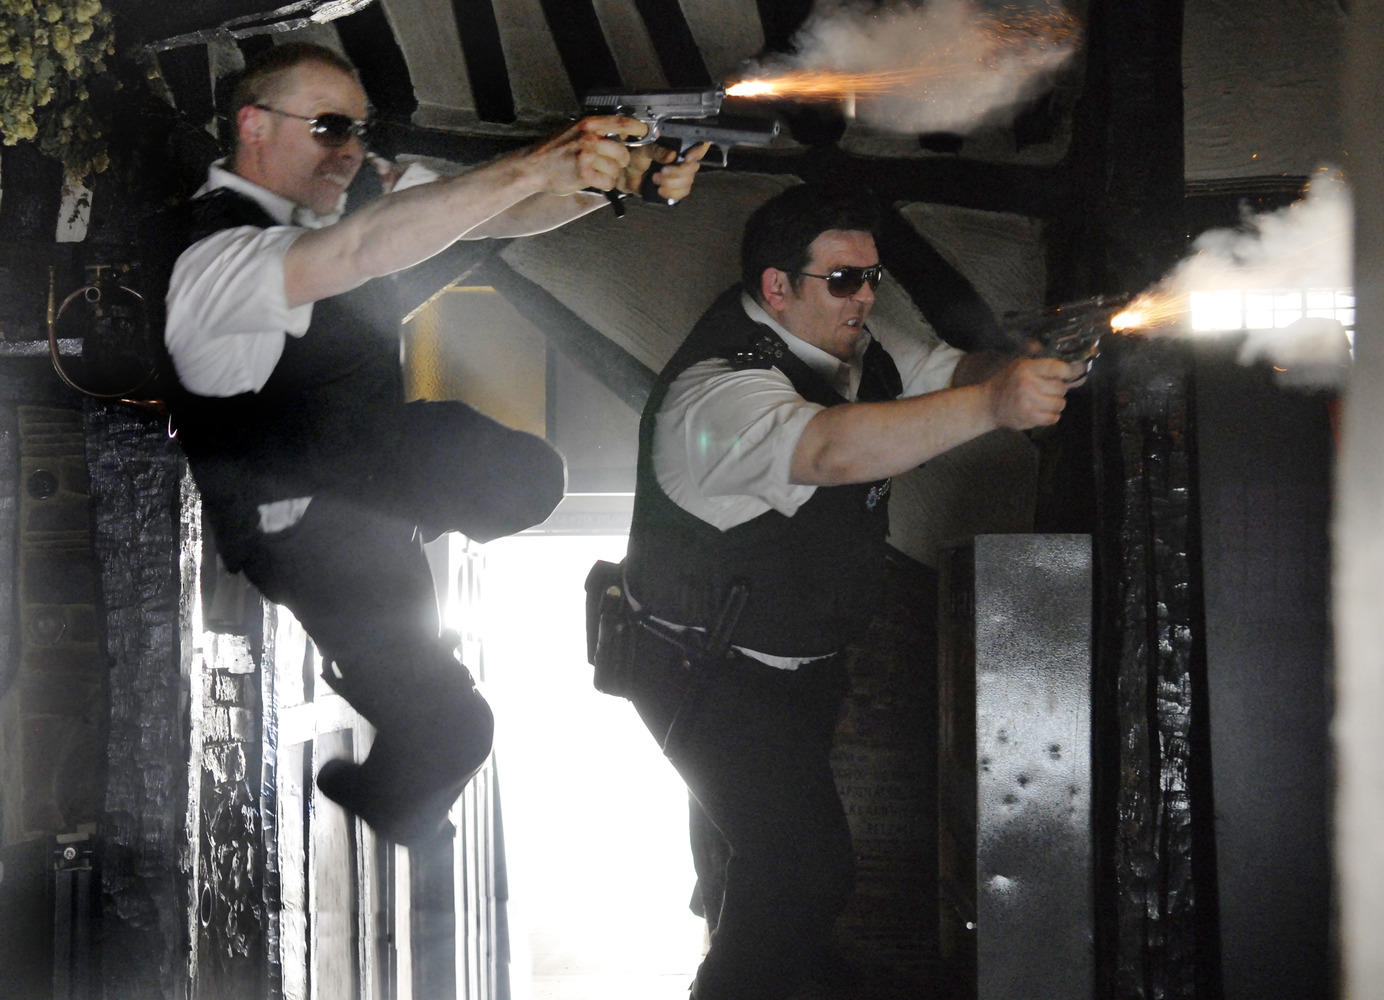 hot-fuzz-raging-fuzz-hot-fuzz-18-07-2007-14-02-2007-14-g